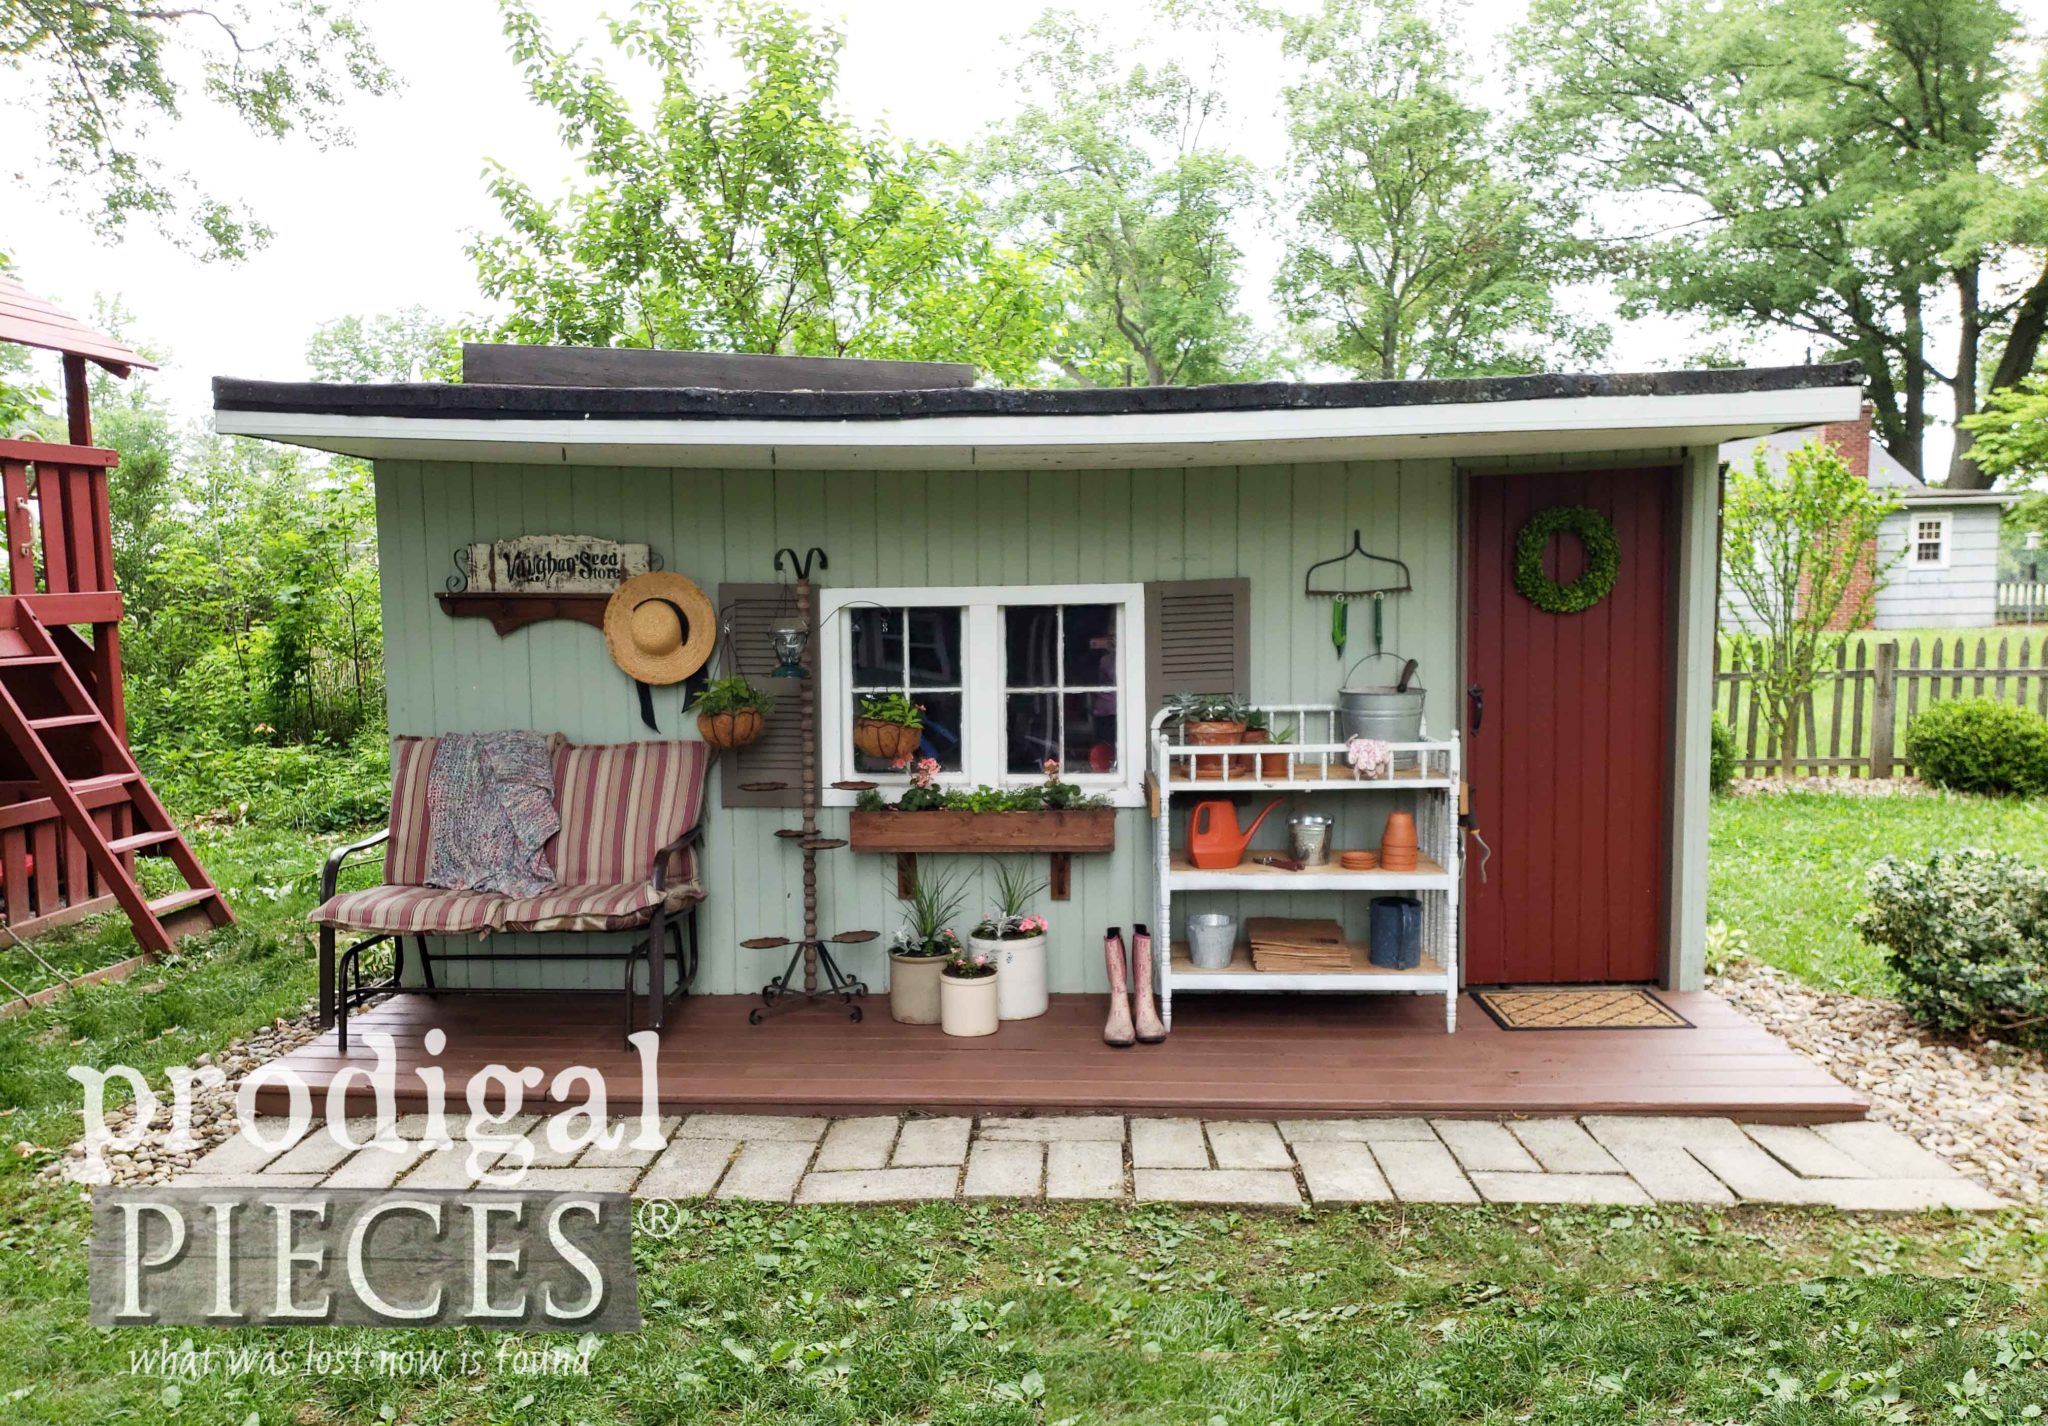 Rustic Farmhouse Style Garden Shed with DIY Spring Decor by Prodigal Pieces | prodigalpieces.com